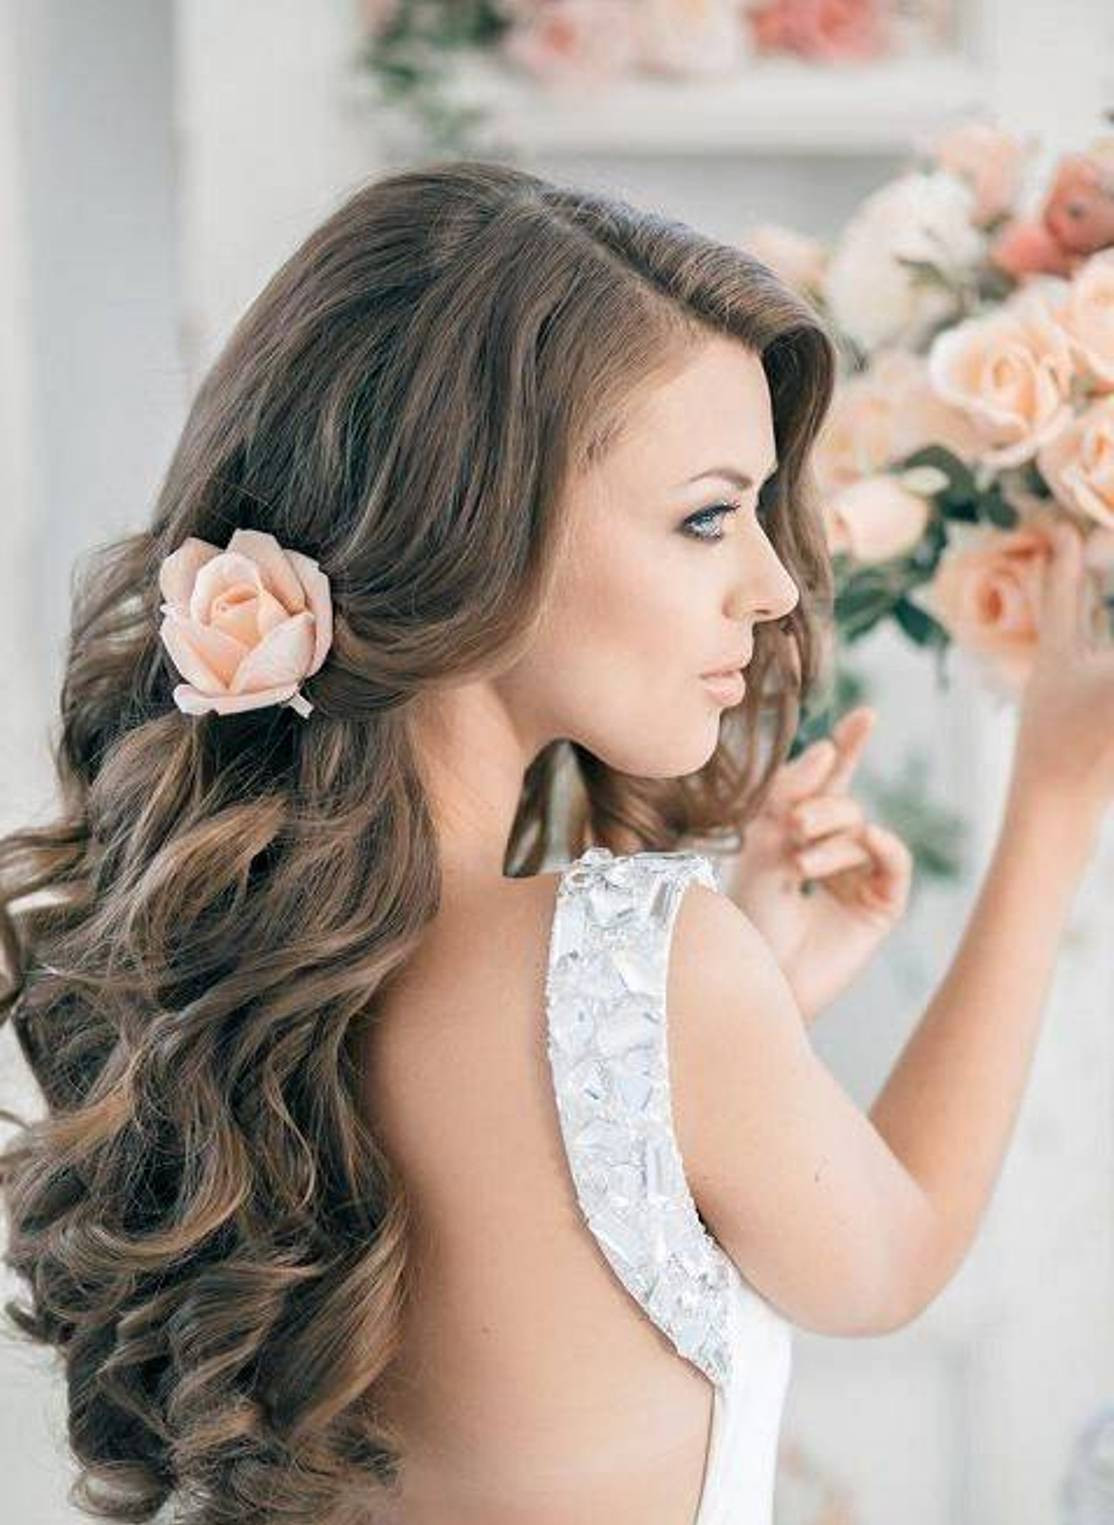 Best ideas about Wedding Curly Hairstyles . Save or Pin Bridal Hairstyles Sirmione Wedding Now.